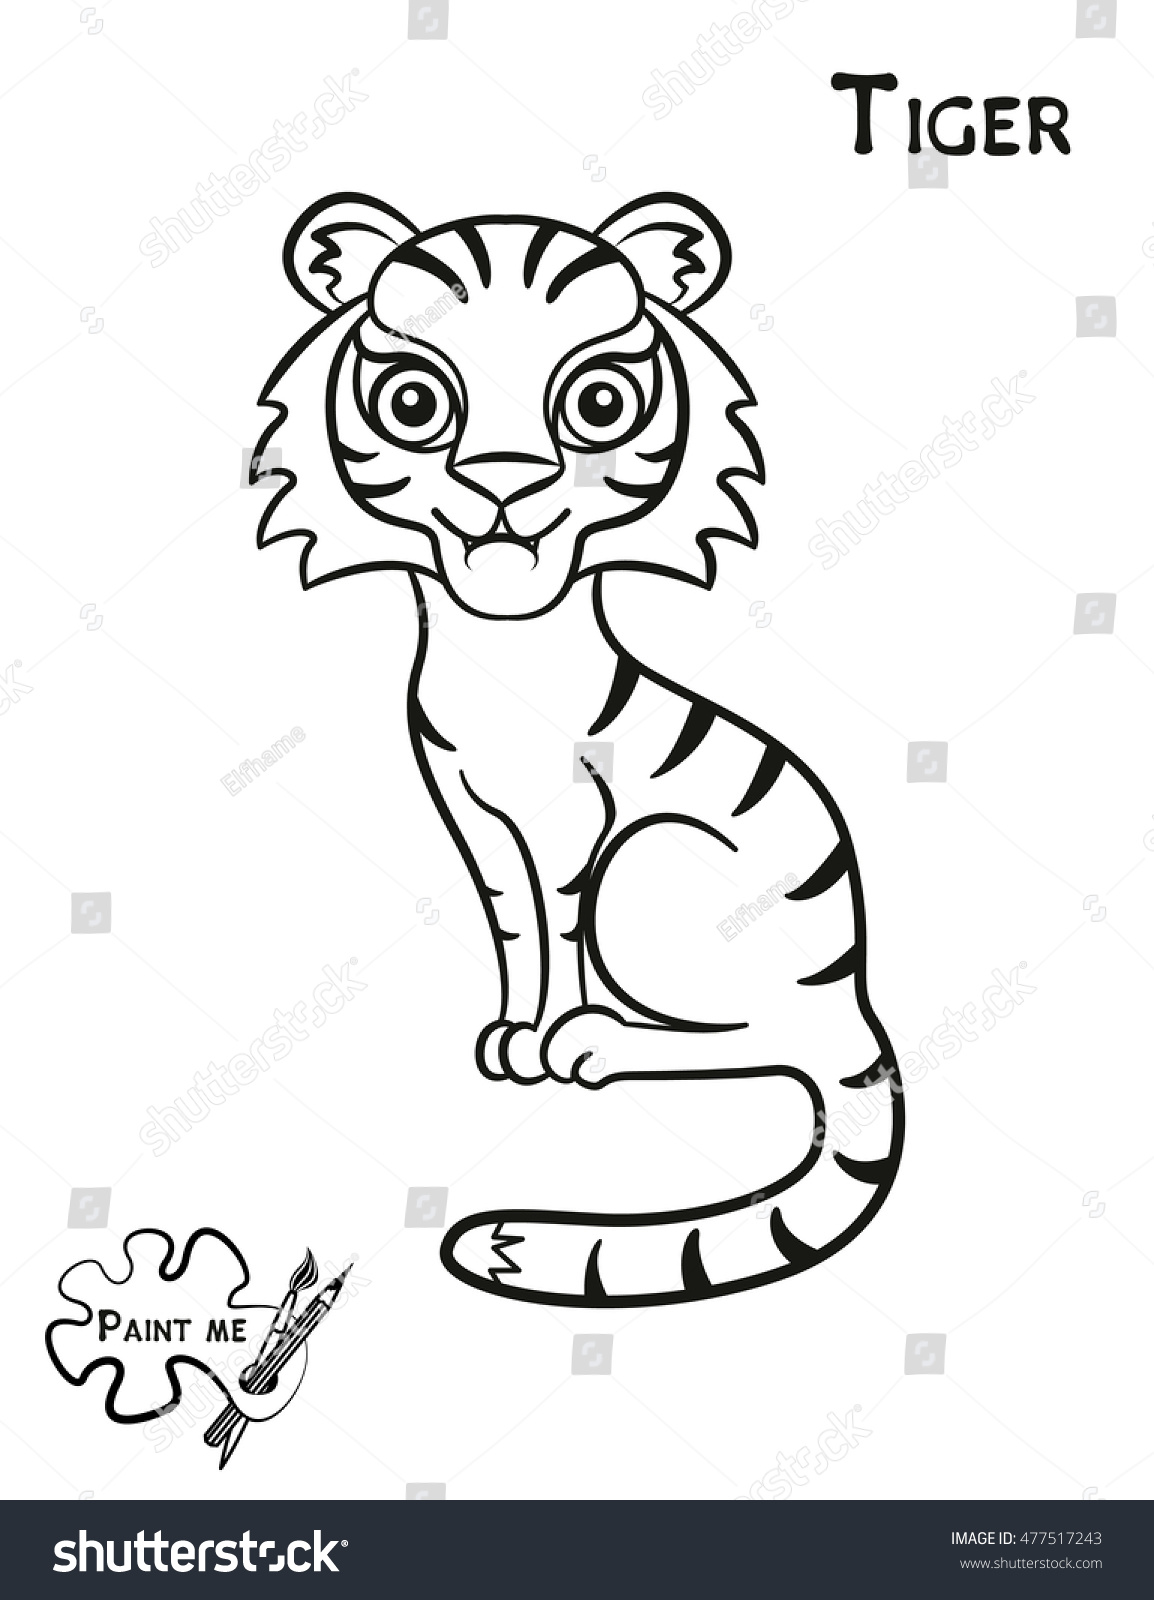 Childrens Coloring Book That Says Paint Me Tiger